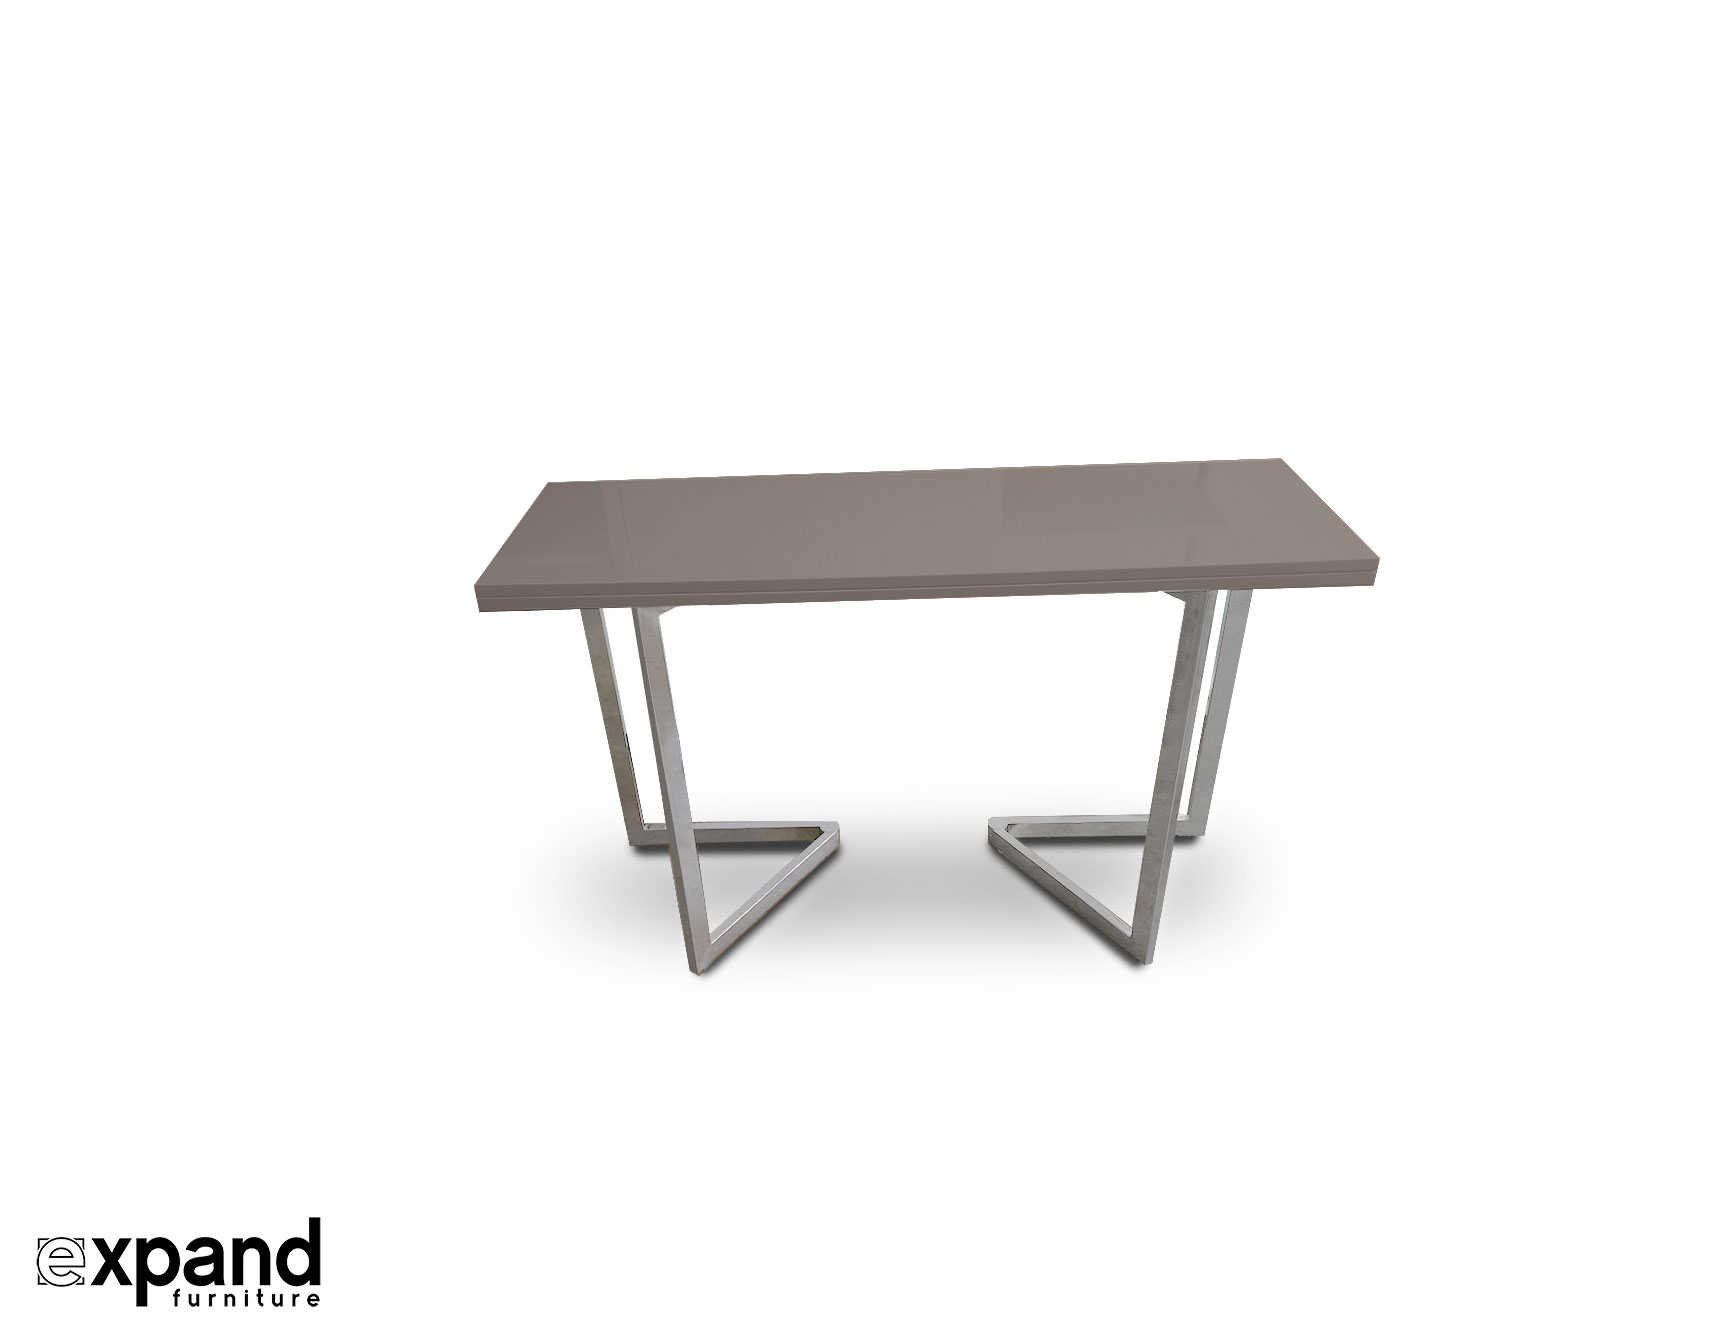 Flip Furniture Transforming Console To Table Expand Furniture